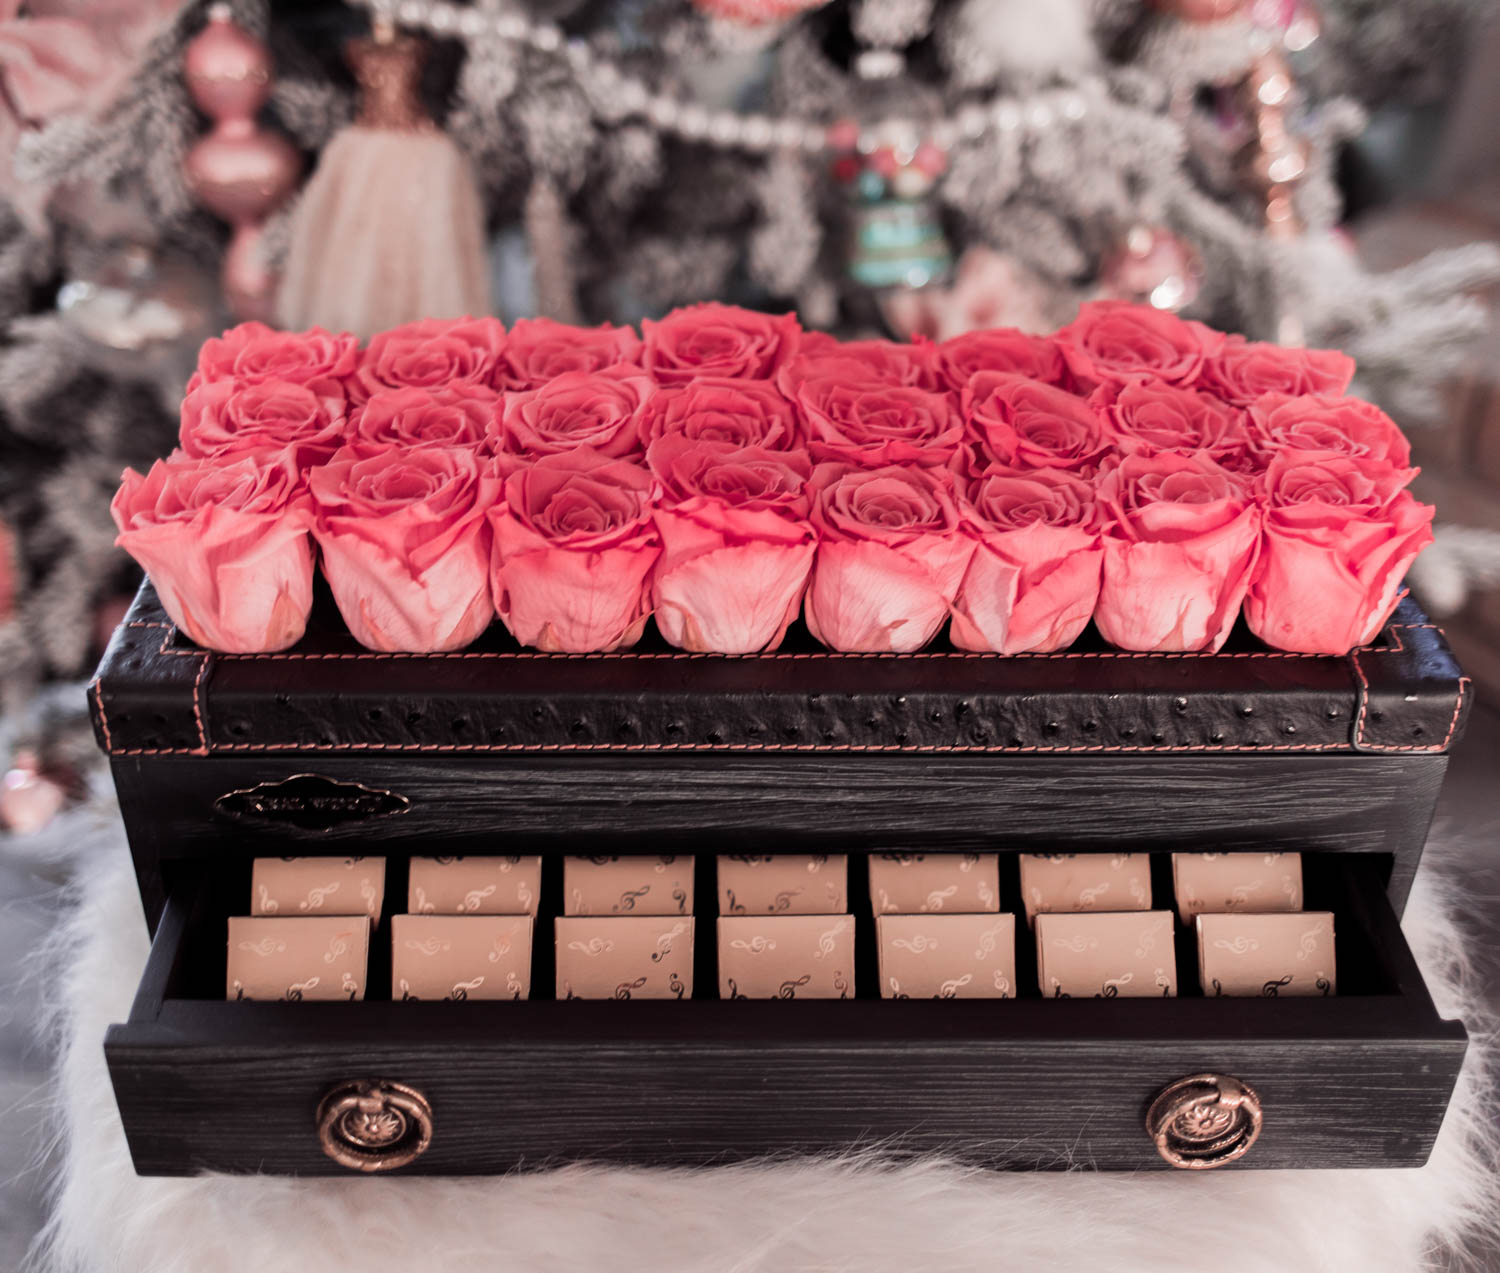 Fashion Blogger Elizabeth Hugen shares her Girly Girl Holiday Gift Guide including an infinity rose box